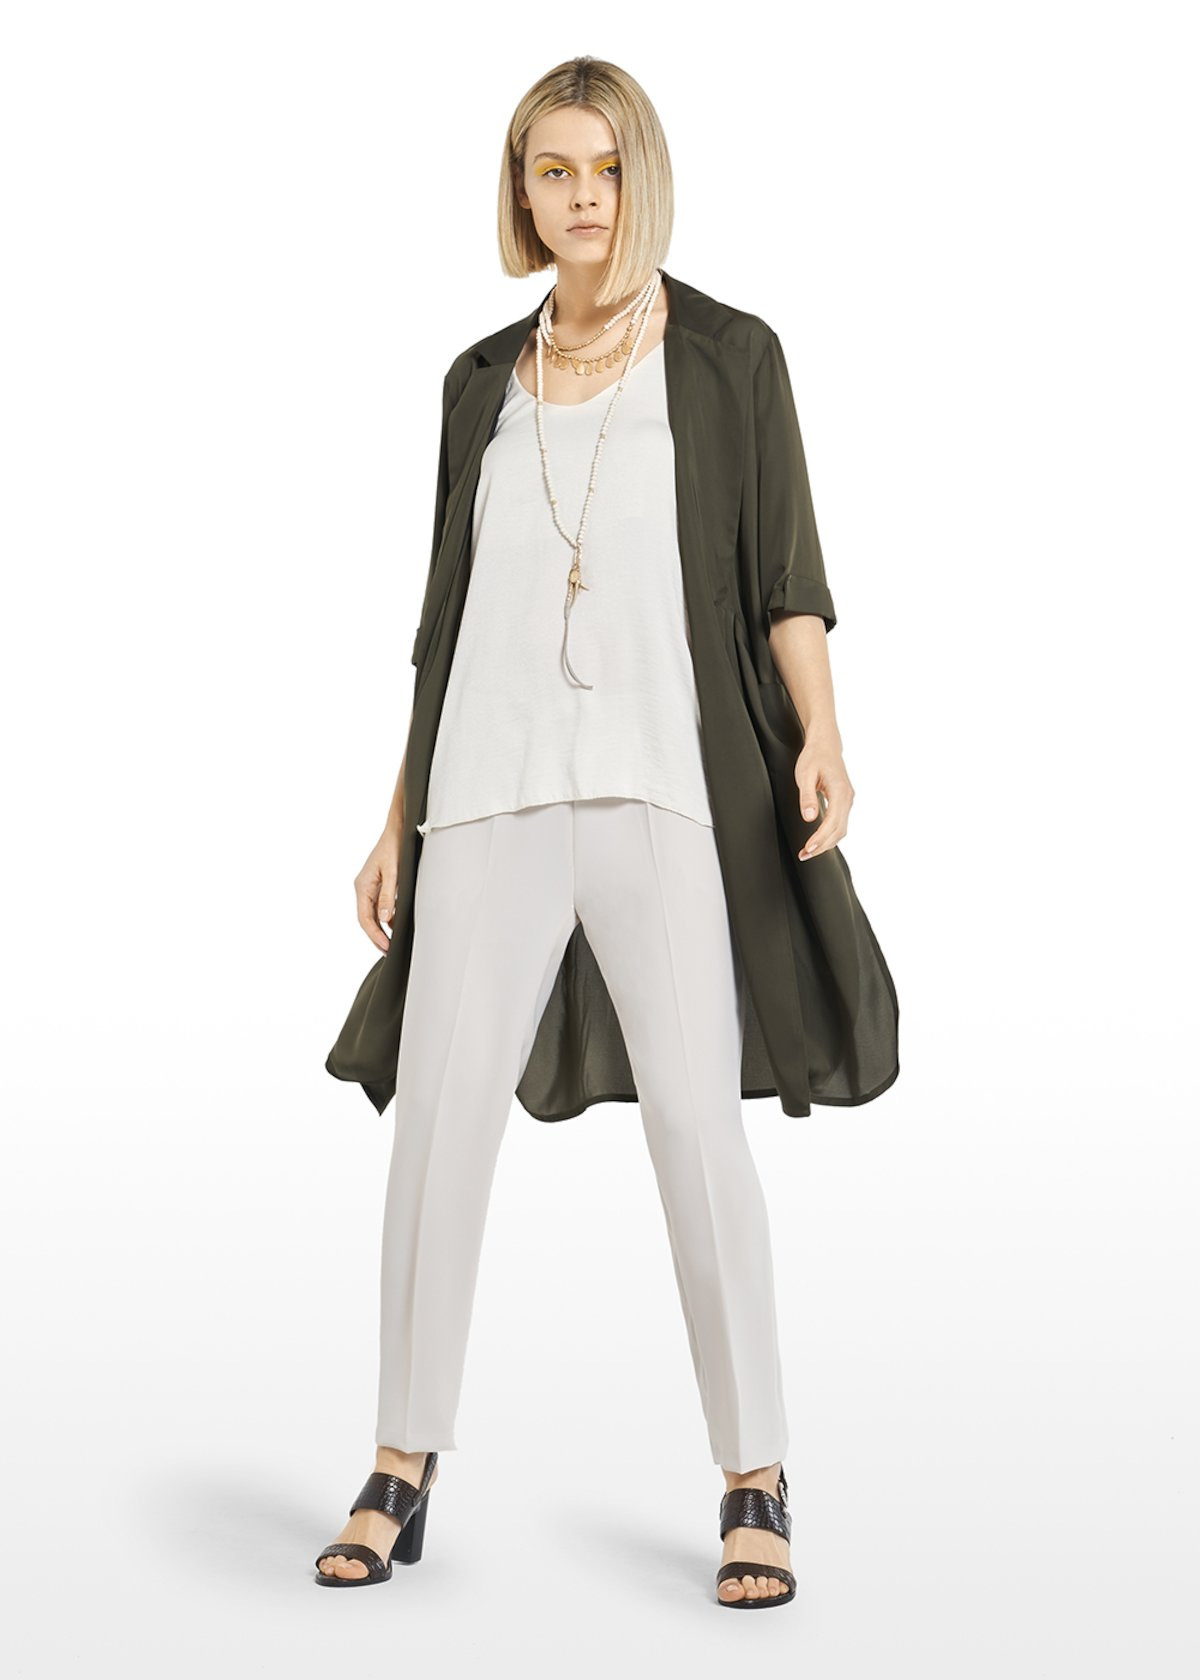 Cliz shirt with lapels and side slits - Woman - Category image